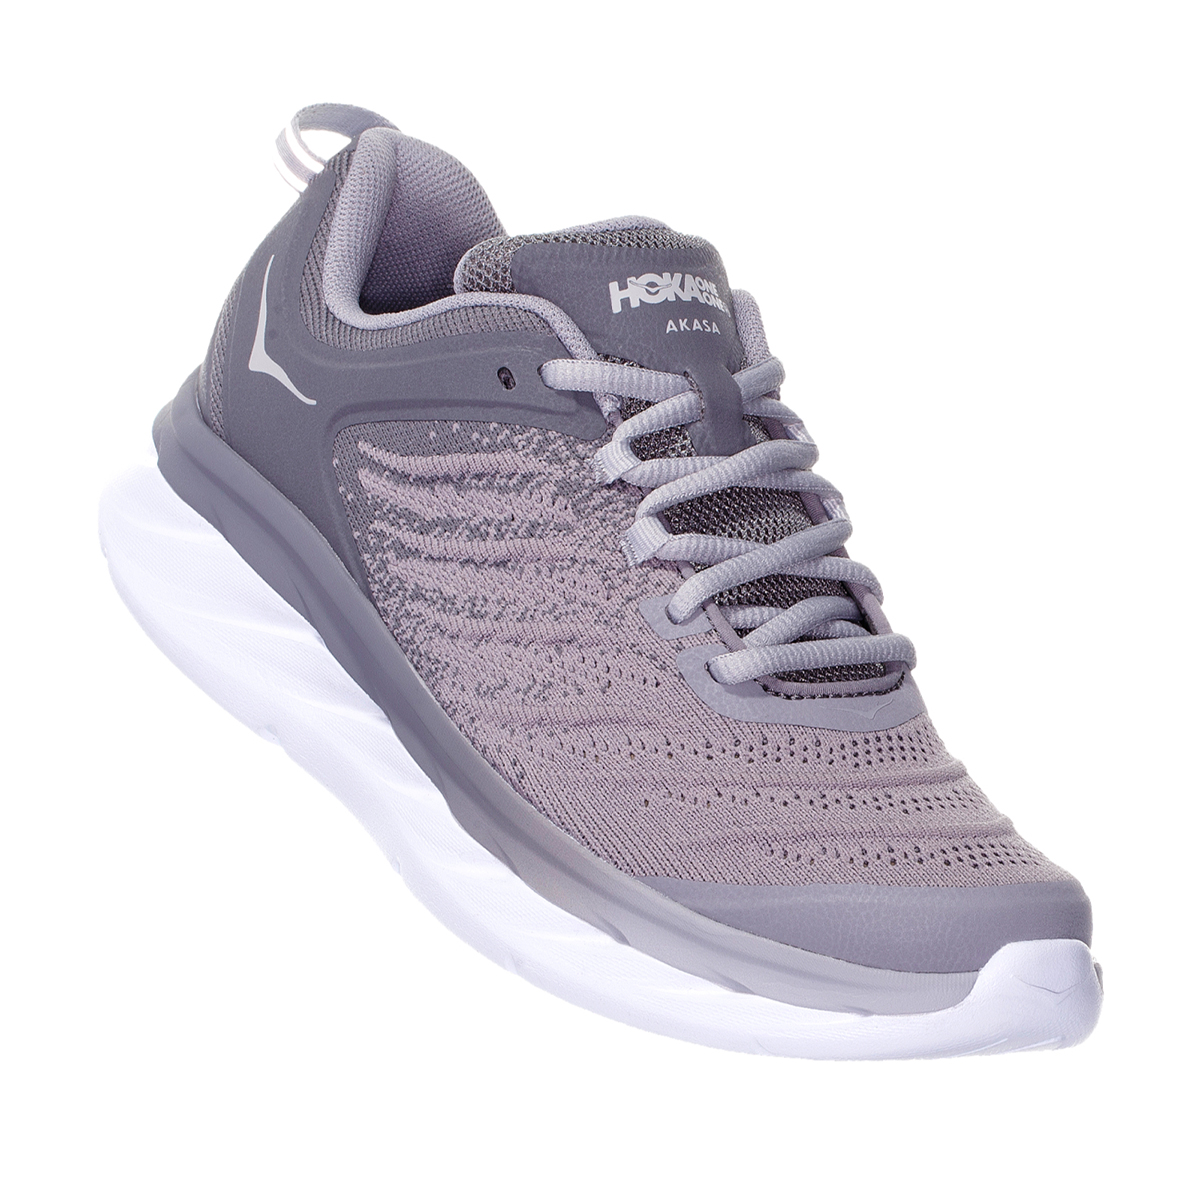 Women's Hoka One One Akasa Running Shoe - Color: Frost Gray/Sconce - Size: 5 - Width: Regular, Frost Gray/Sconce, large, image 5